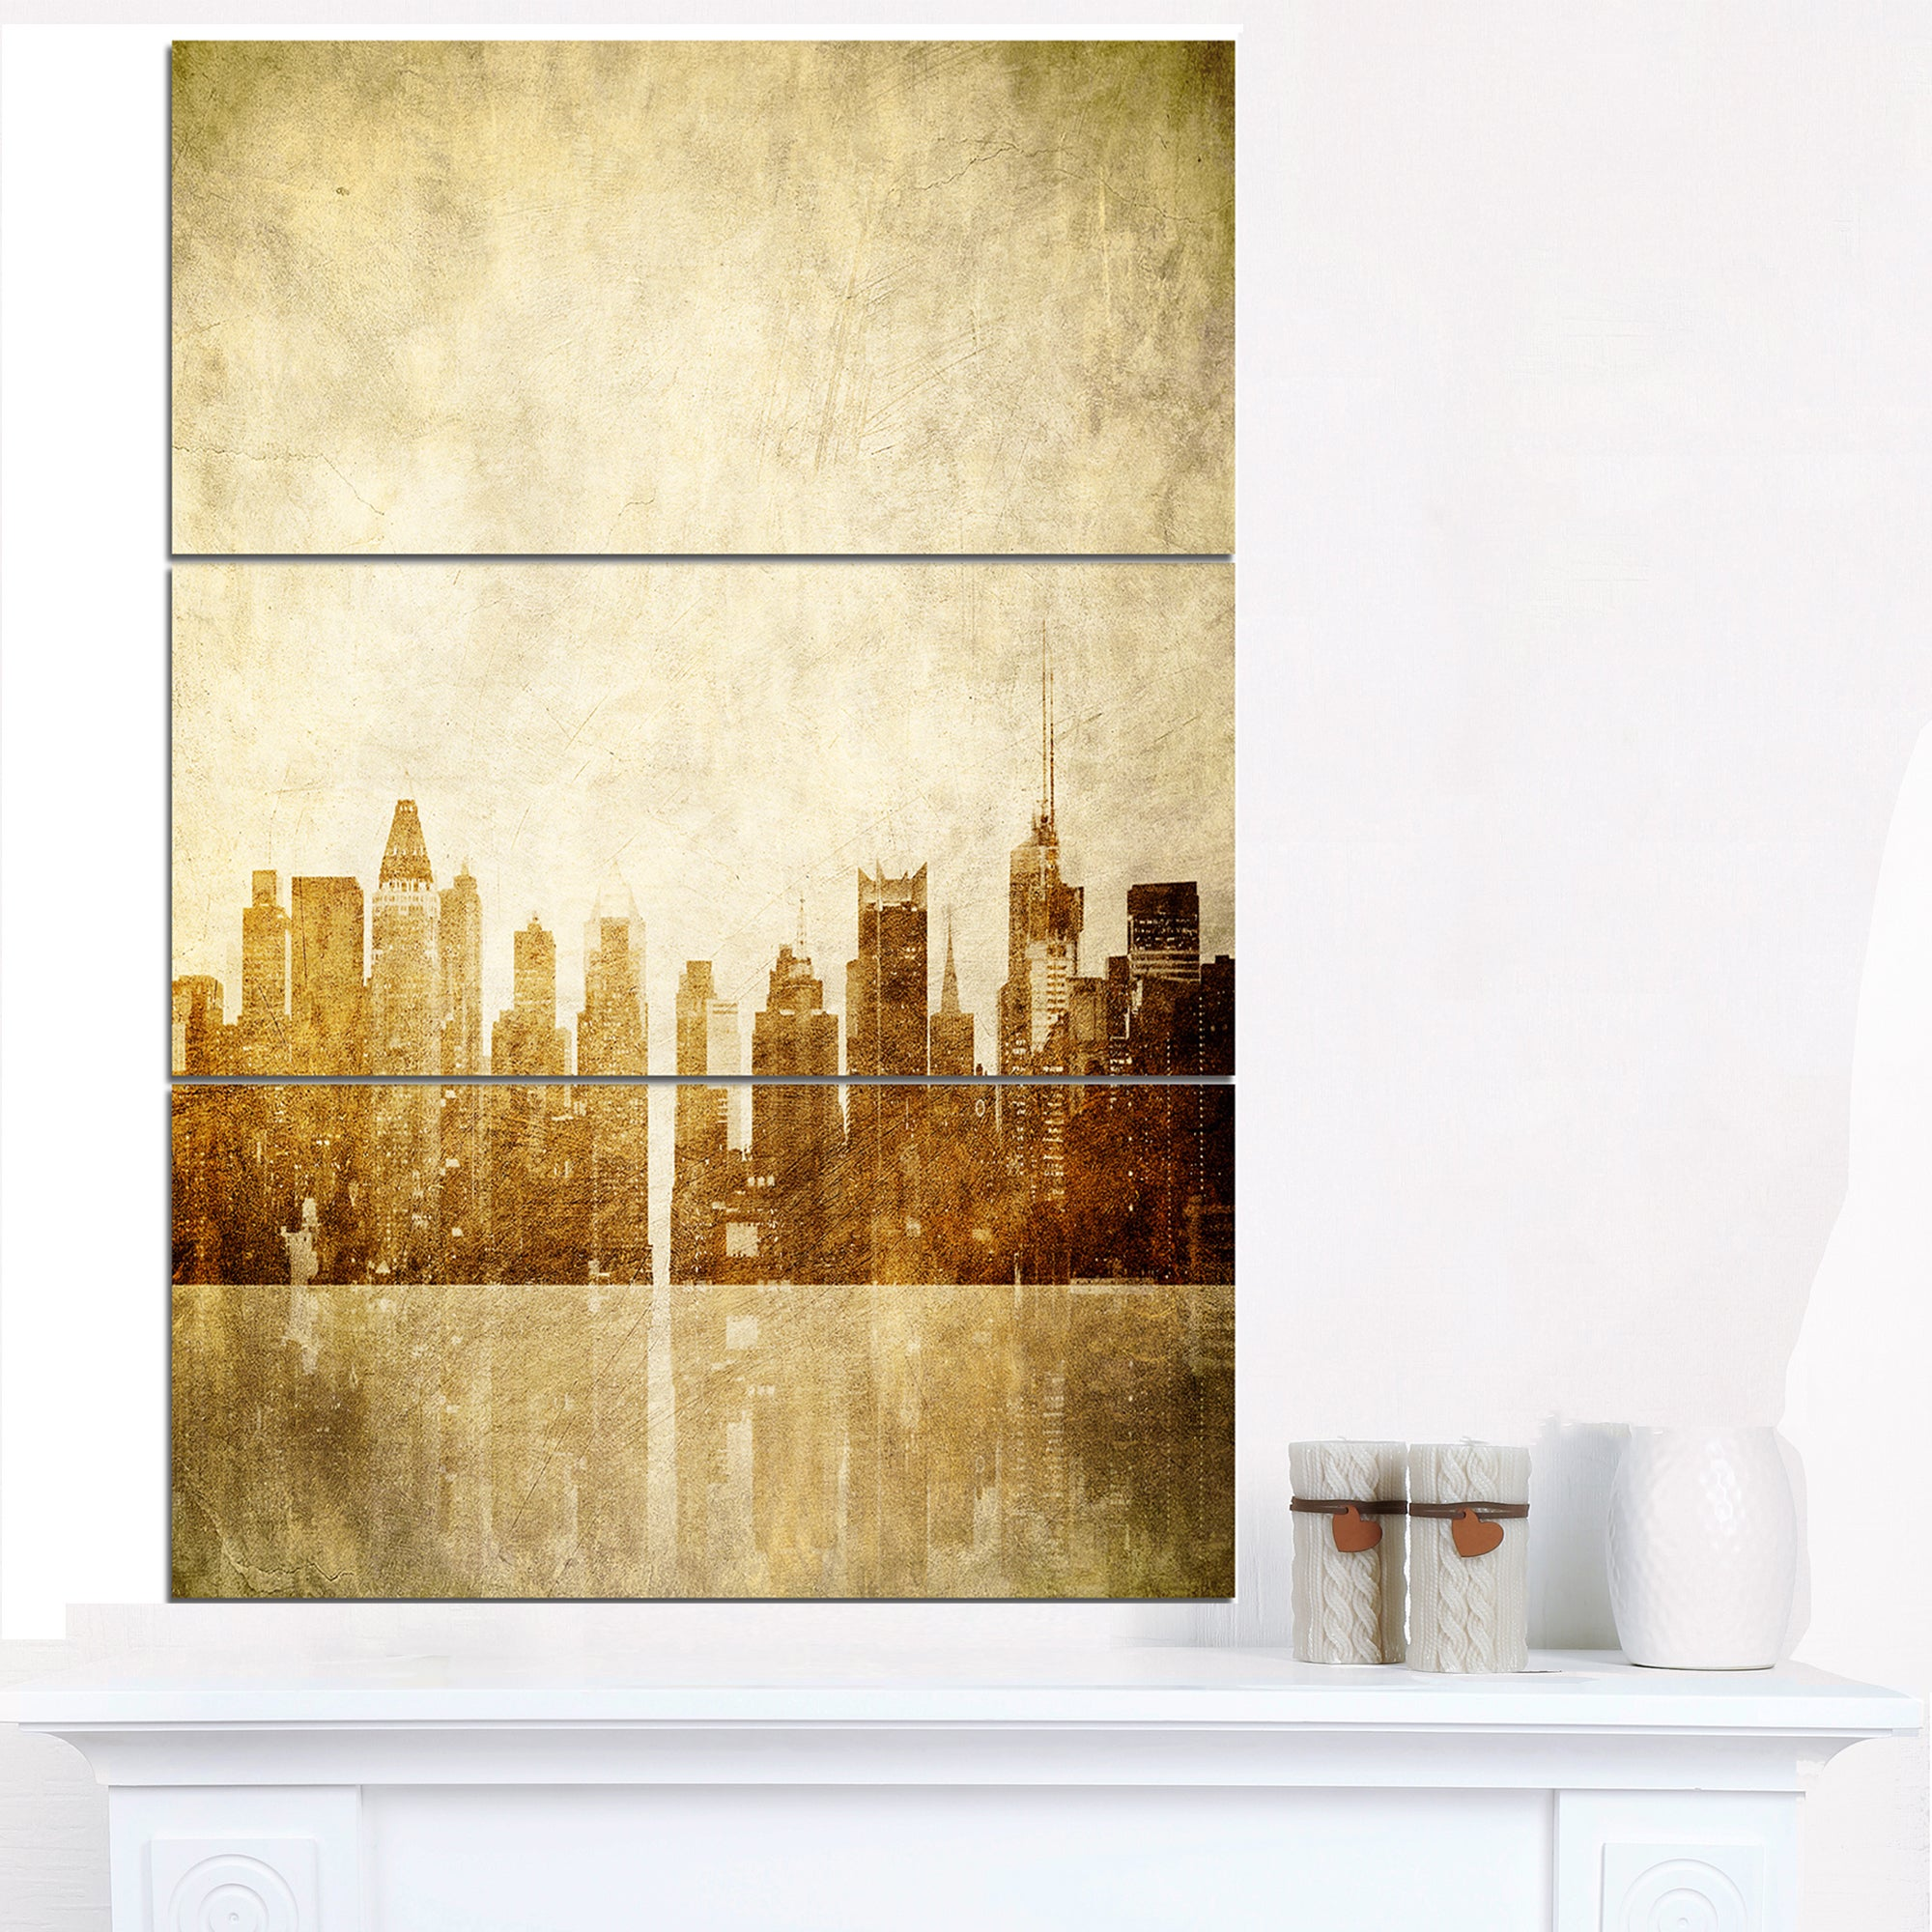 Colorful City Skyline Wall Art Illustration - The Wall Art ...